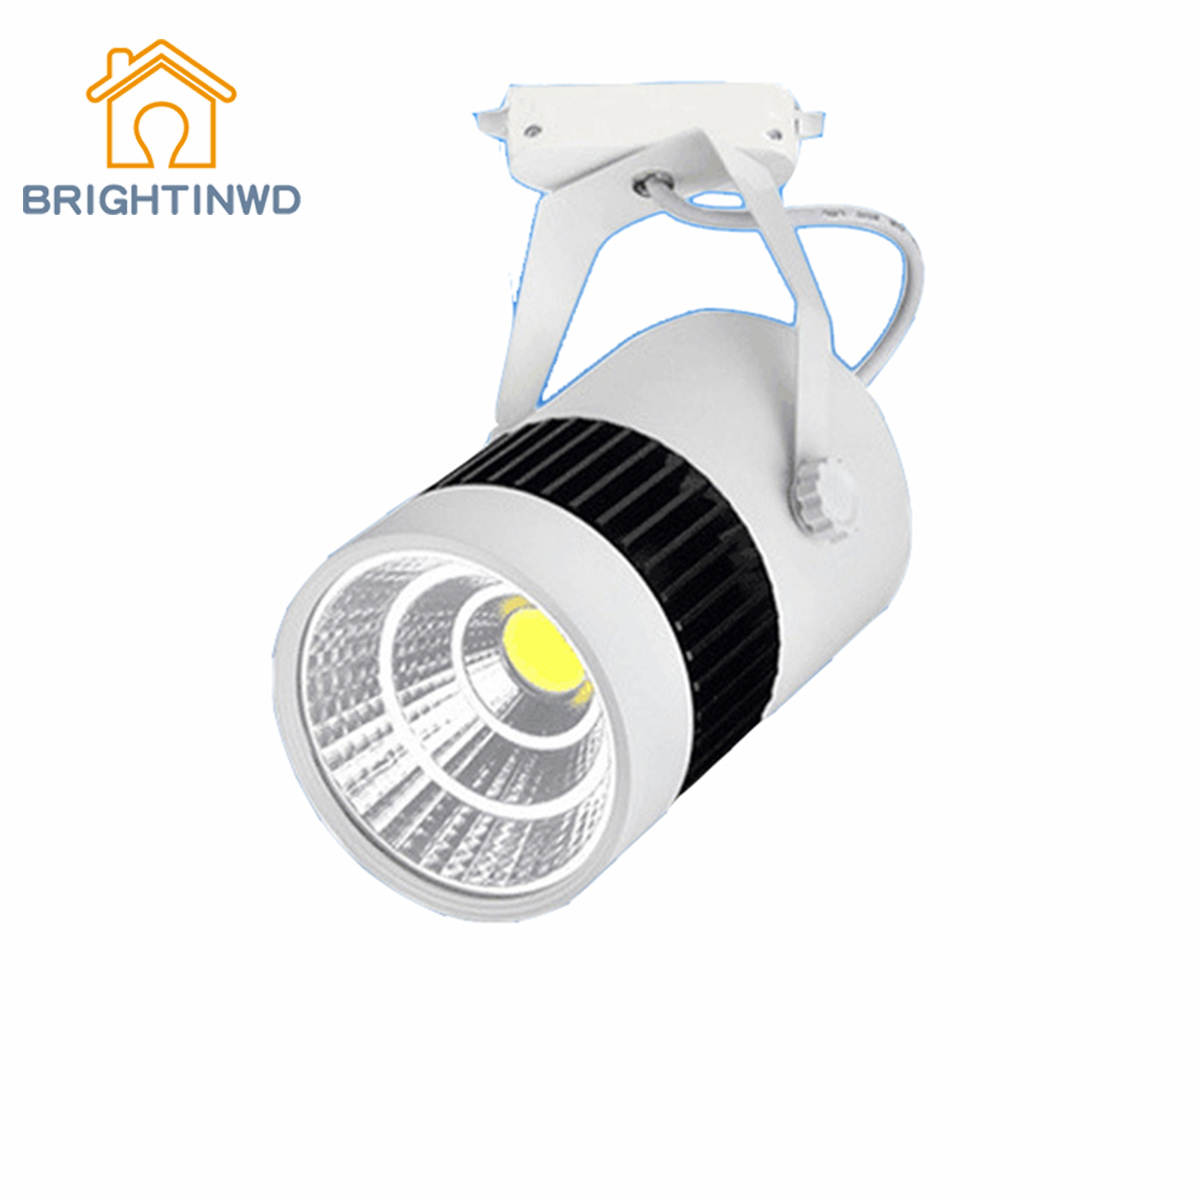 BRIGHTINWD LED Track Light 30W Clothing Store Window Display Light Jewelry Counter COB Track Light LED Spotlight led track light50wled exhibition hall cob track light to shoot the light clothing store to shoot the light window